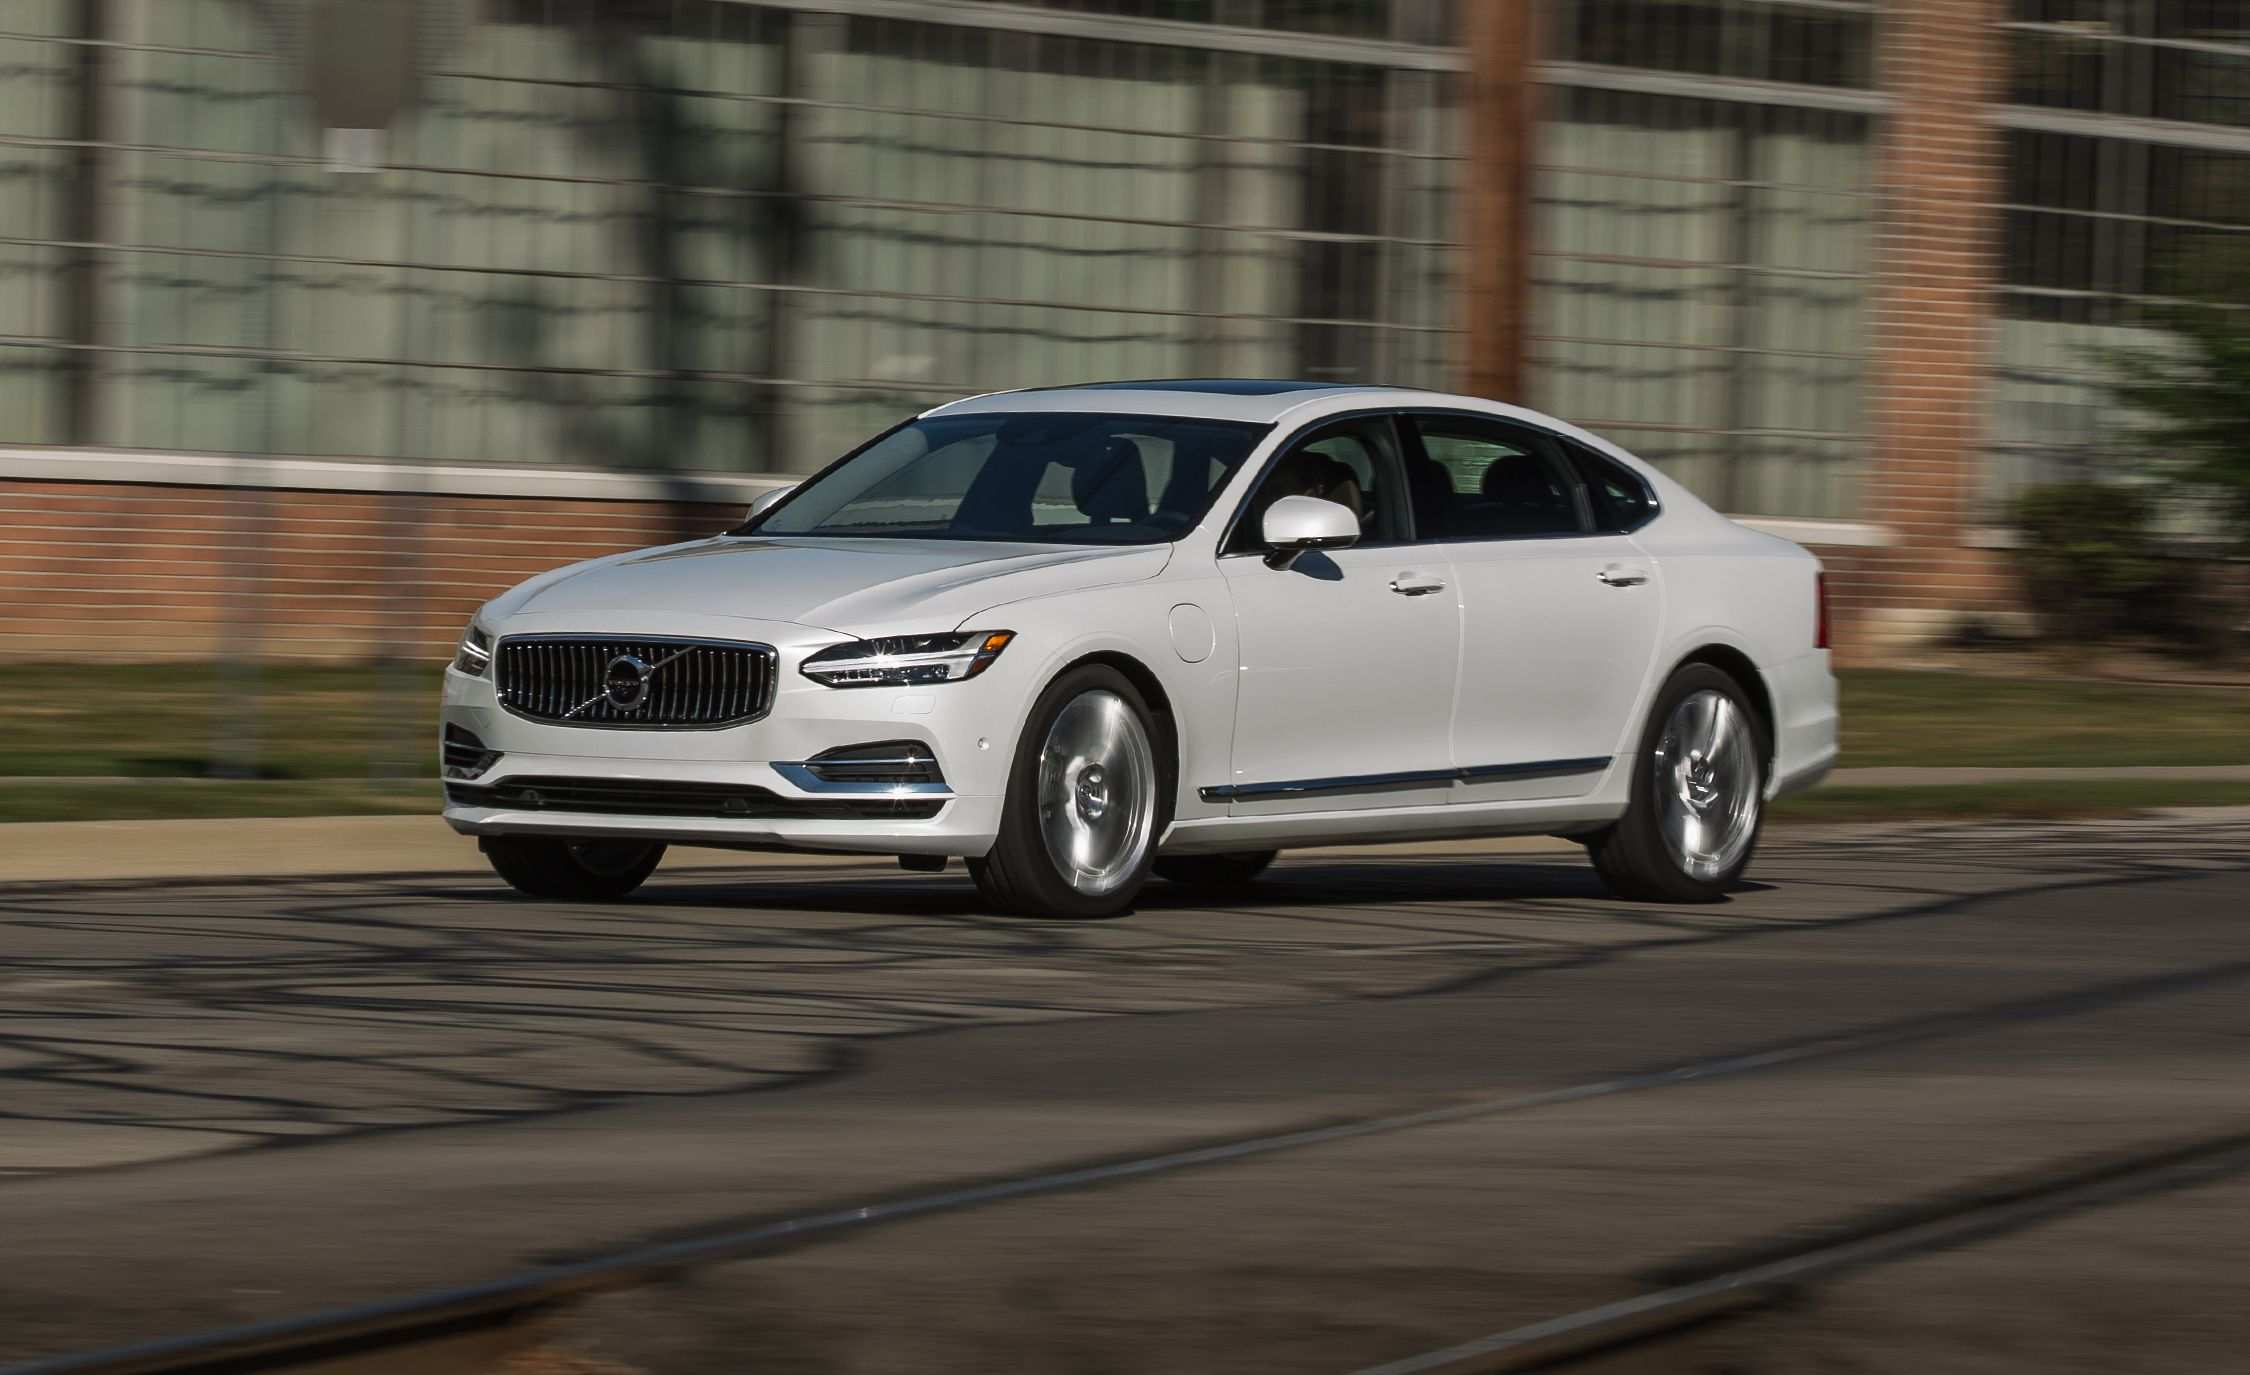 18 Great The Volvo Phev 2019 Performance And New Engine Release with The Volvo Phev 2019 Performance And New Engine